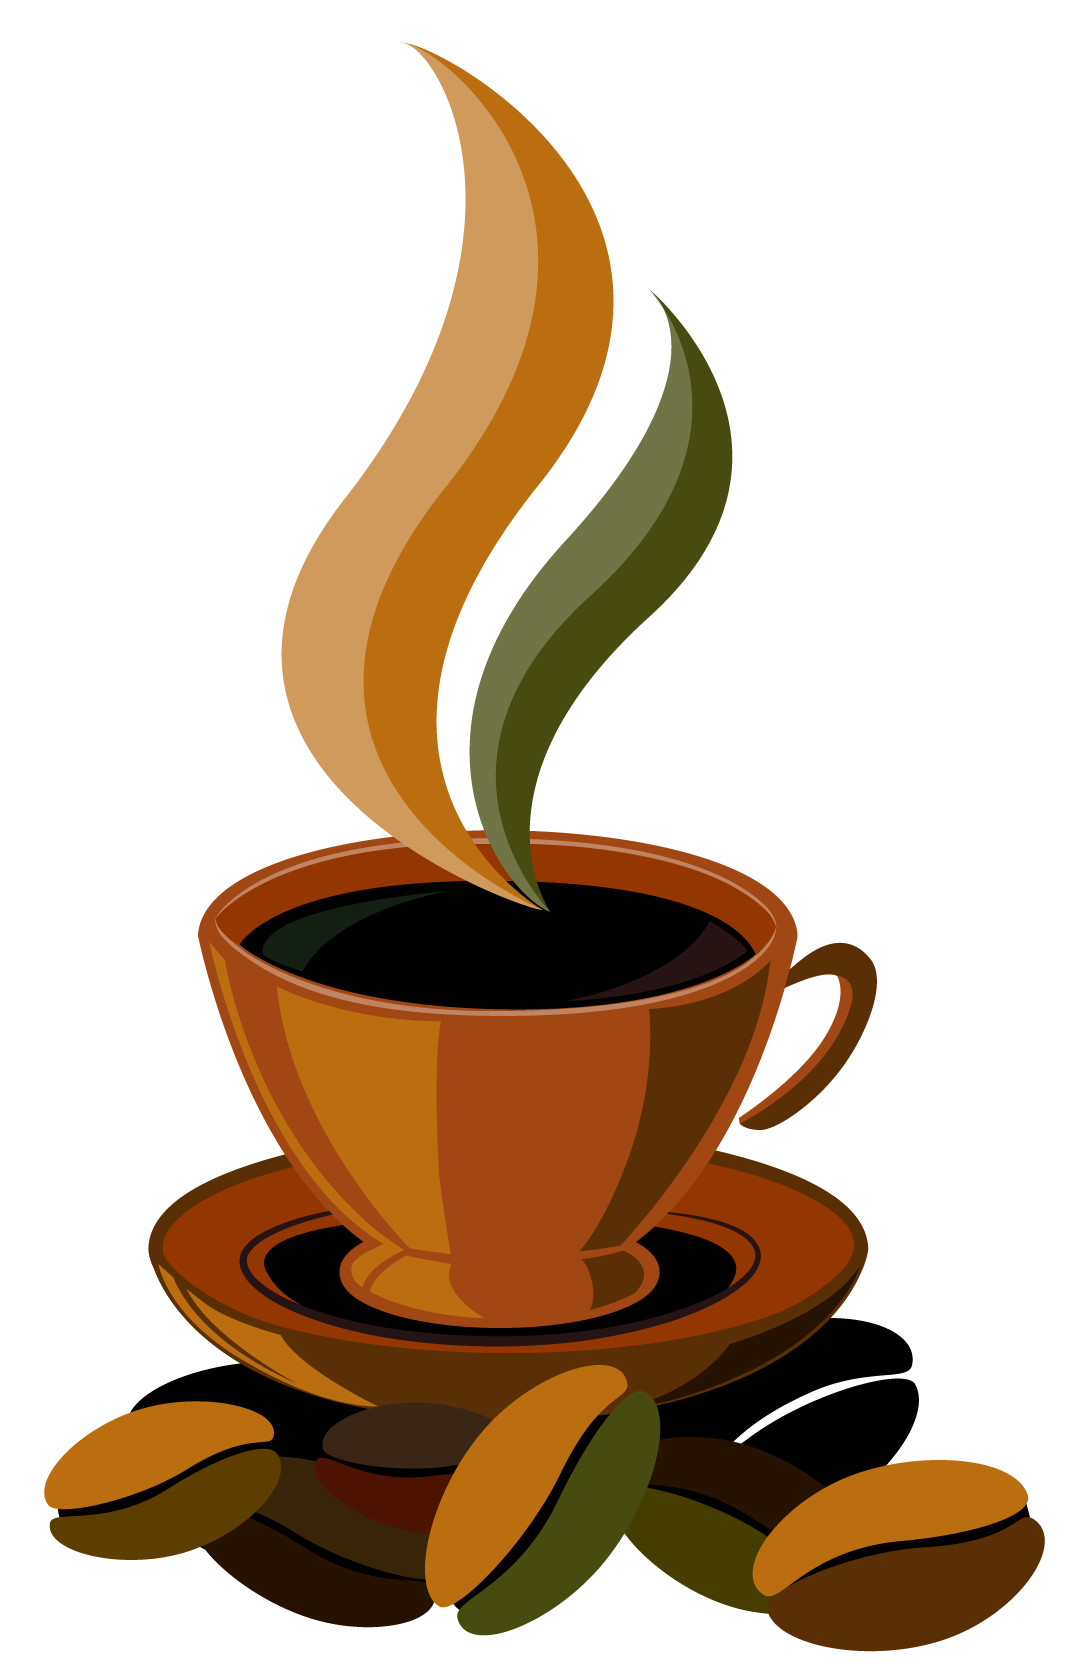 Coffee Cup Png Clipart Vector Gallery Yopriceville High Quality Images And Transparent Png Free Clipart Coffee Clipart Coffee Cartoon Coffee Cup Art